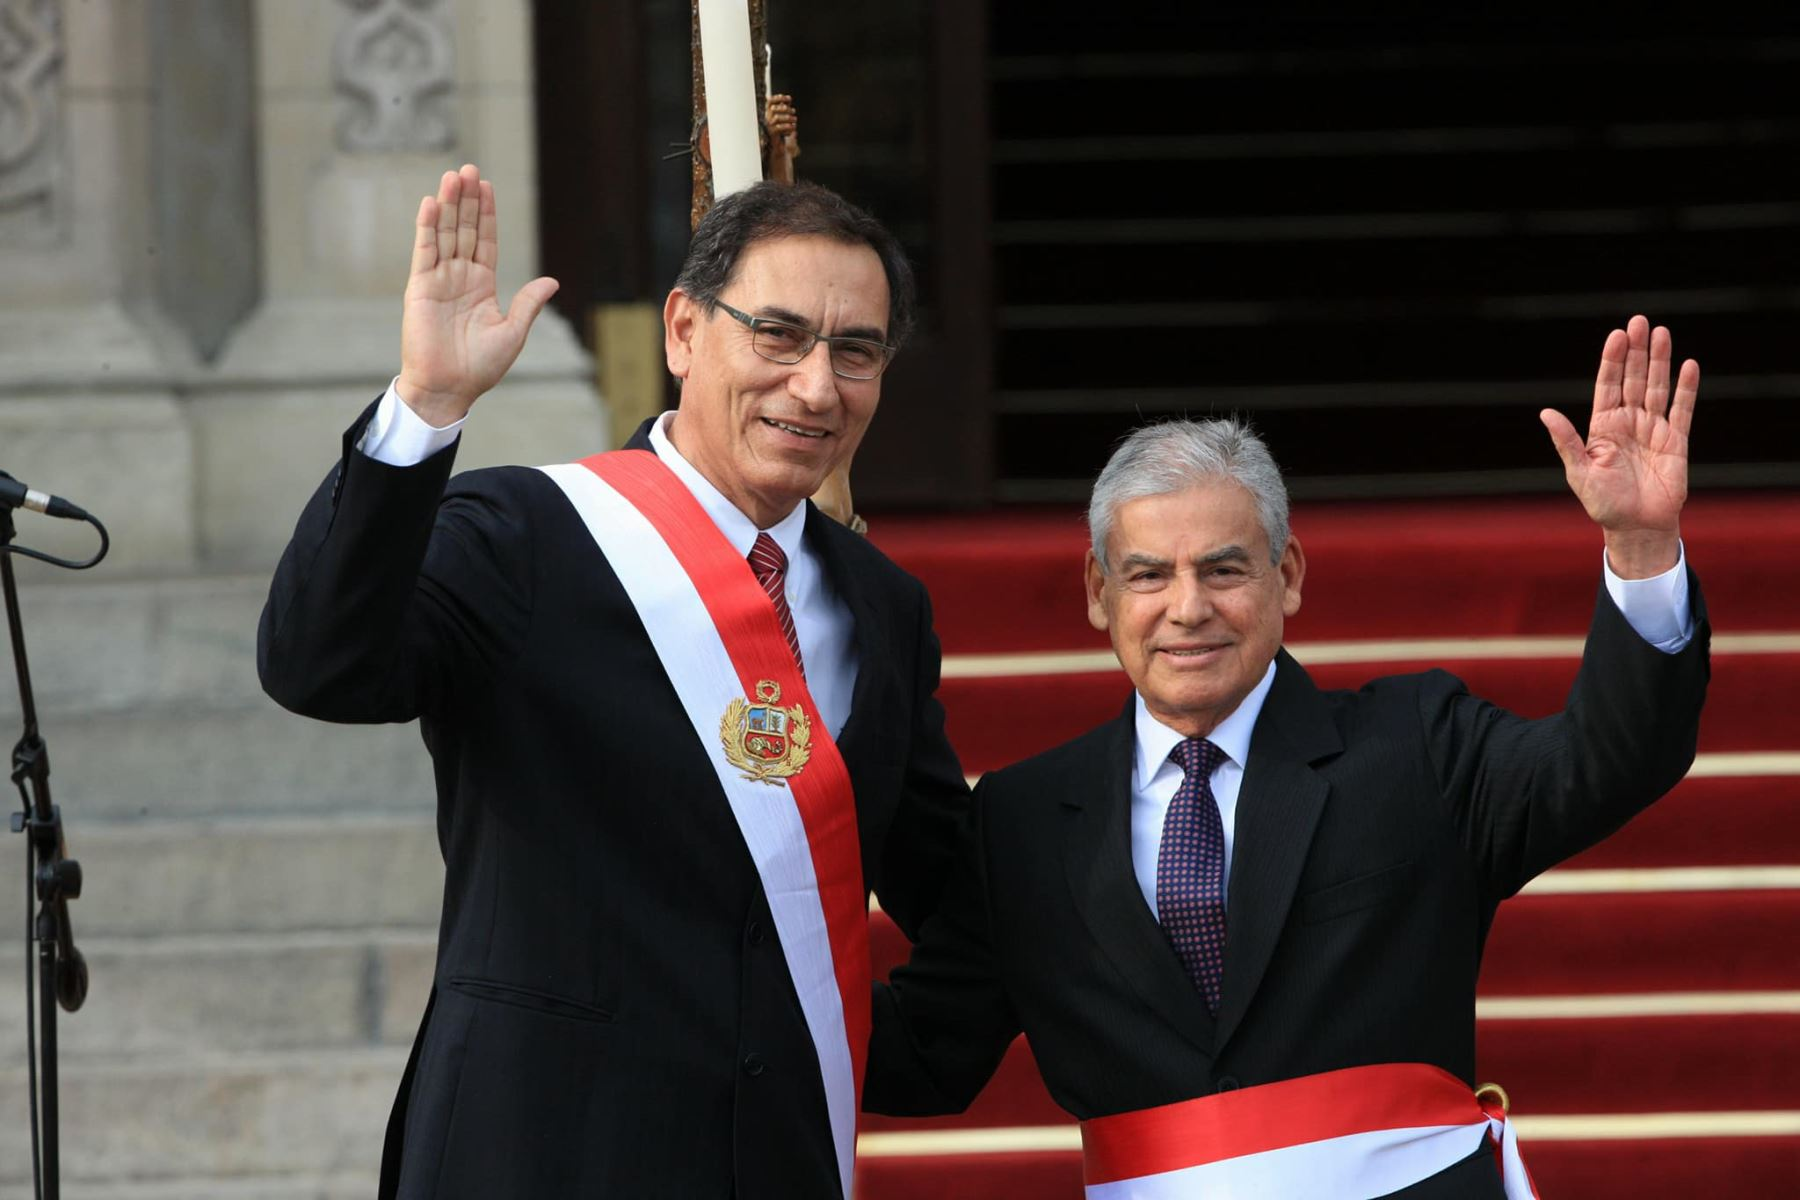 Peru PM: Cabinet Members Have Good Political Skills And Technical Competence